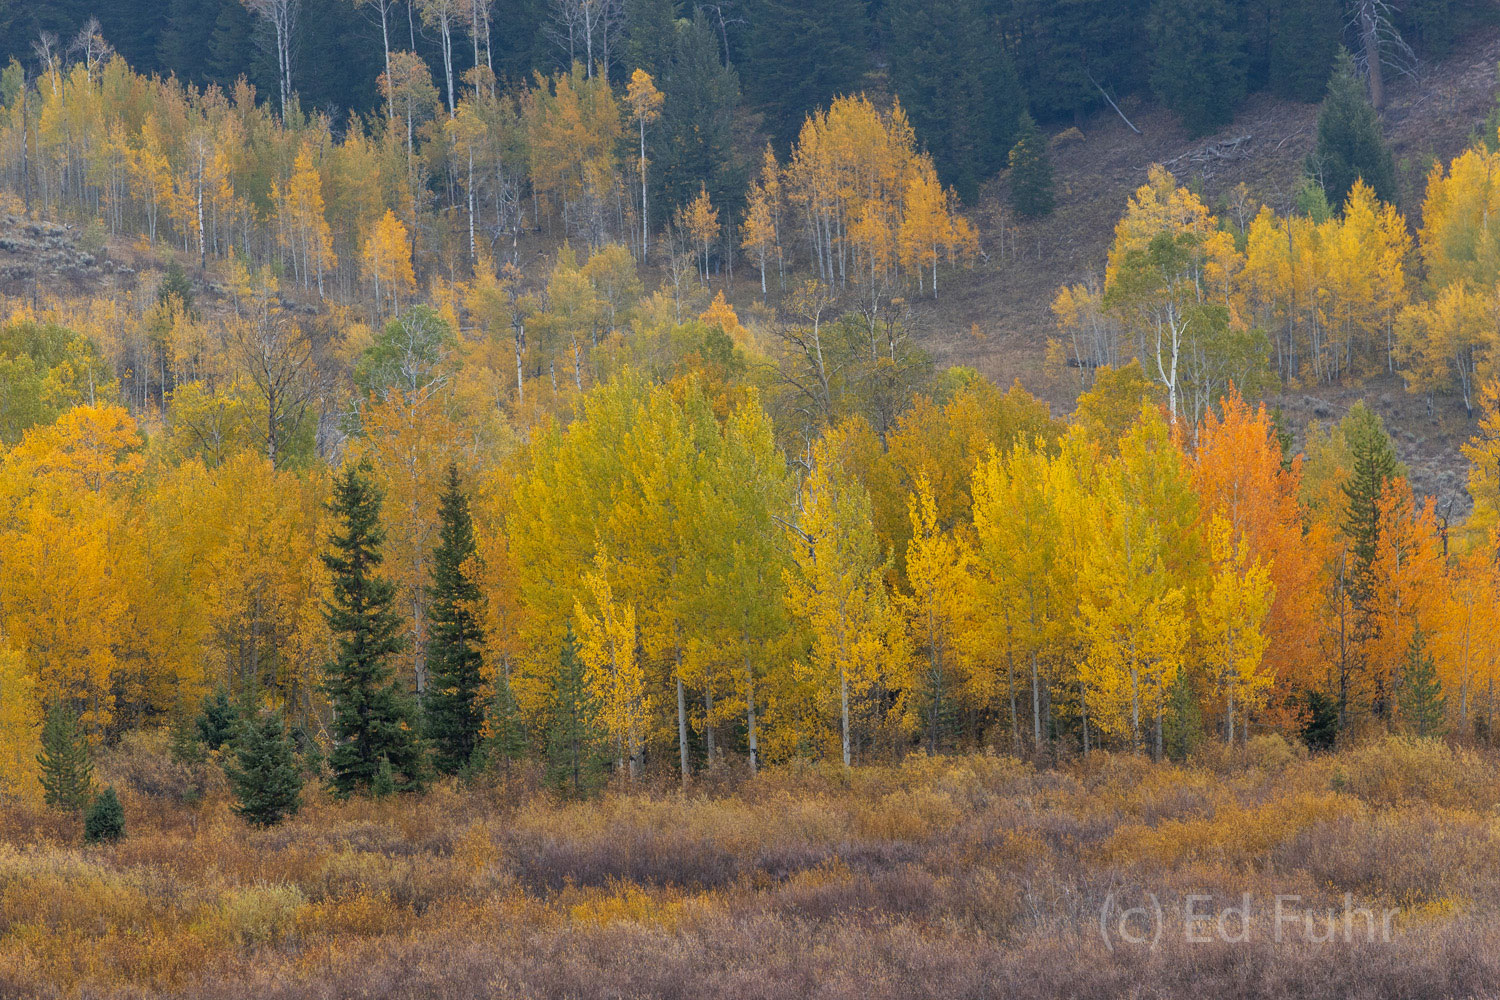 Pines, willows and aspen create an autumn montage near Pacific Creek.